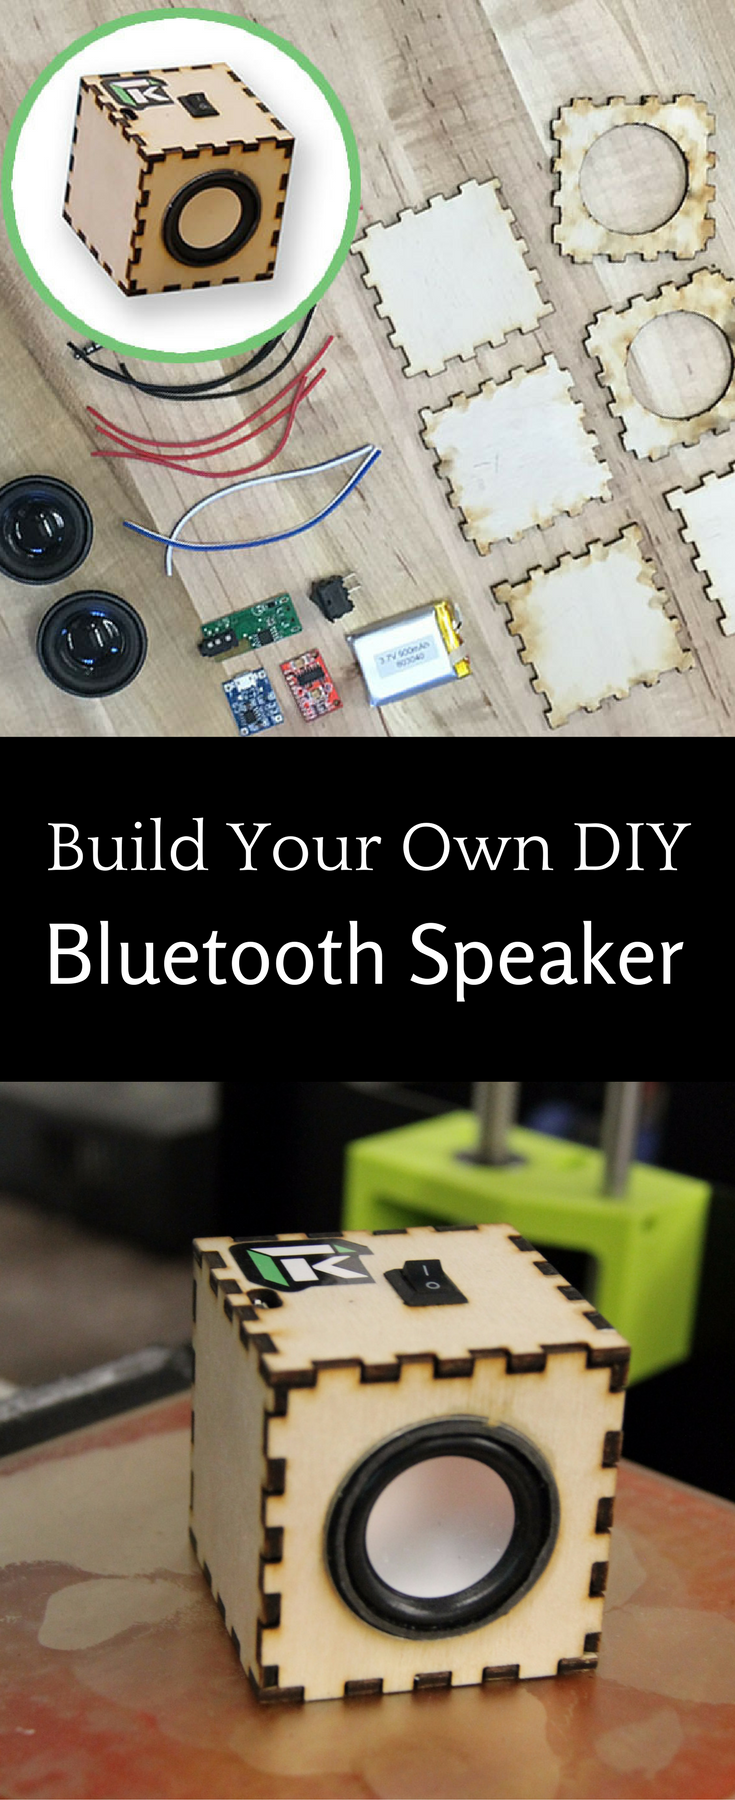 Create your own diy bluetooth speaker with this fun electronic maker create your own diy bluetooth speaker with this fun electronic maker kit solutioingenieria Choice Image